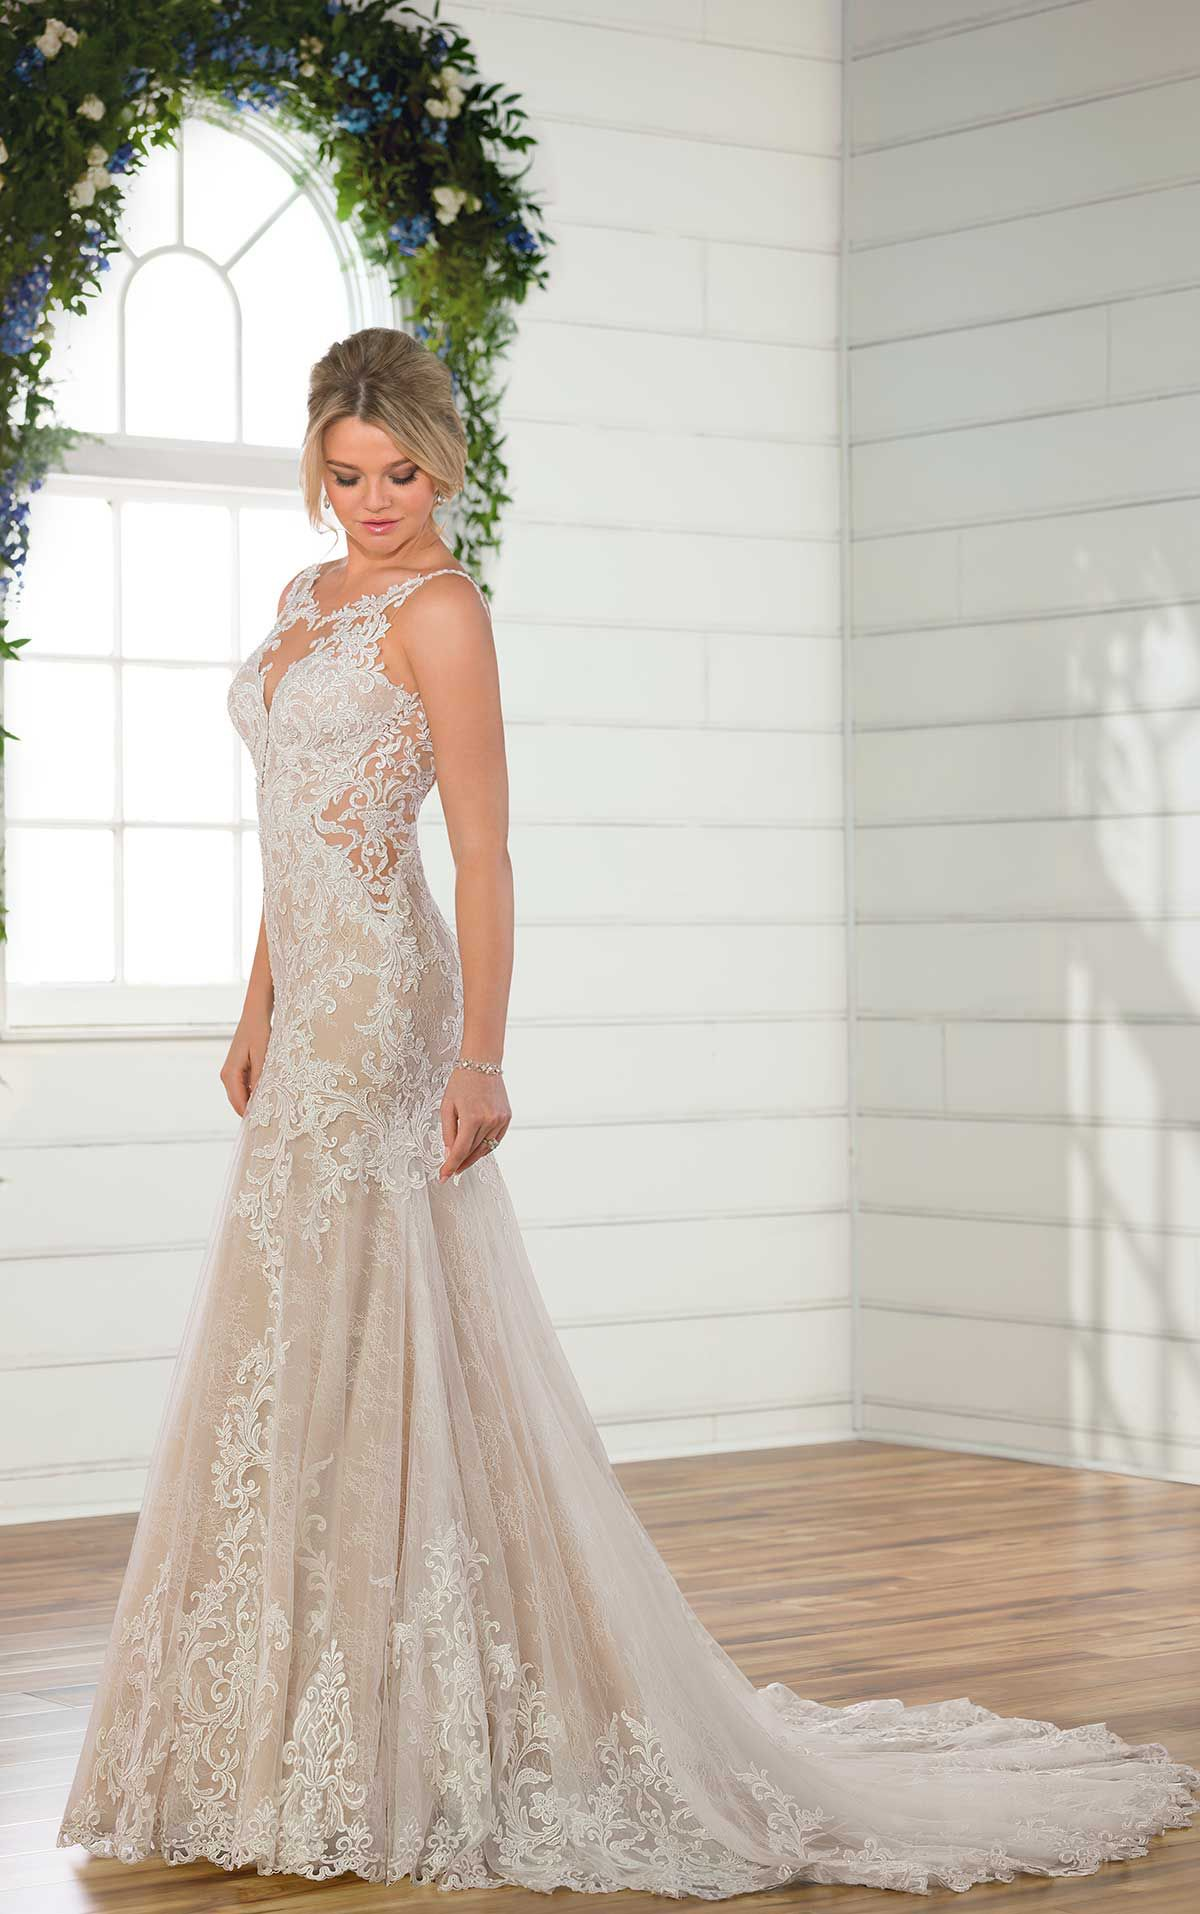 b42be937d72 Schedule your appointment at Romashka Bridal by calling 425.374.4906 ...